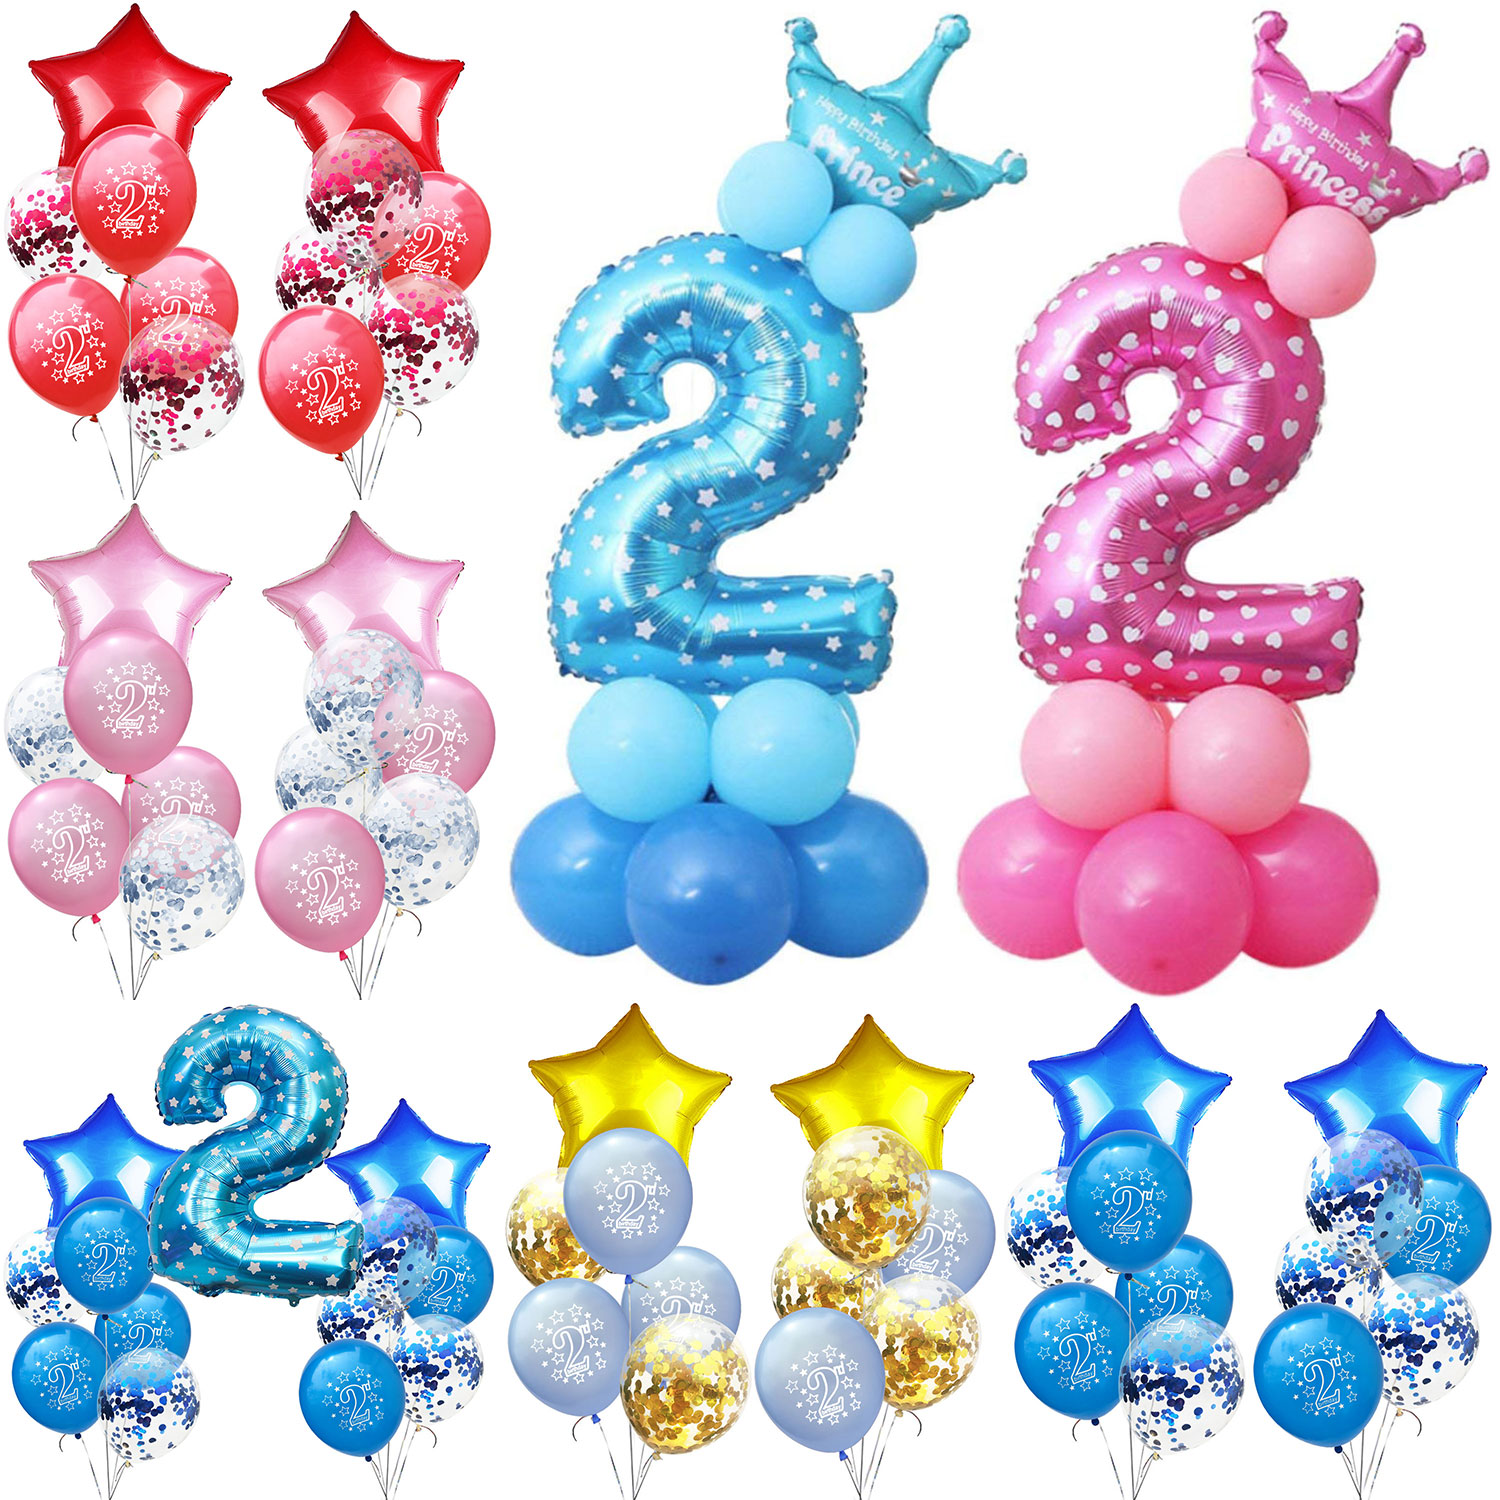 AMAWILL 12 18inch 2 Year Old Birthday Pink Blue Latex Balloons Boy Girl Happy 2nd Party Decorations Kids Baby Shower